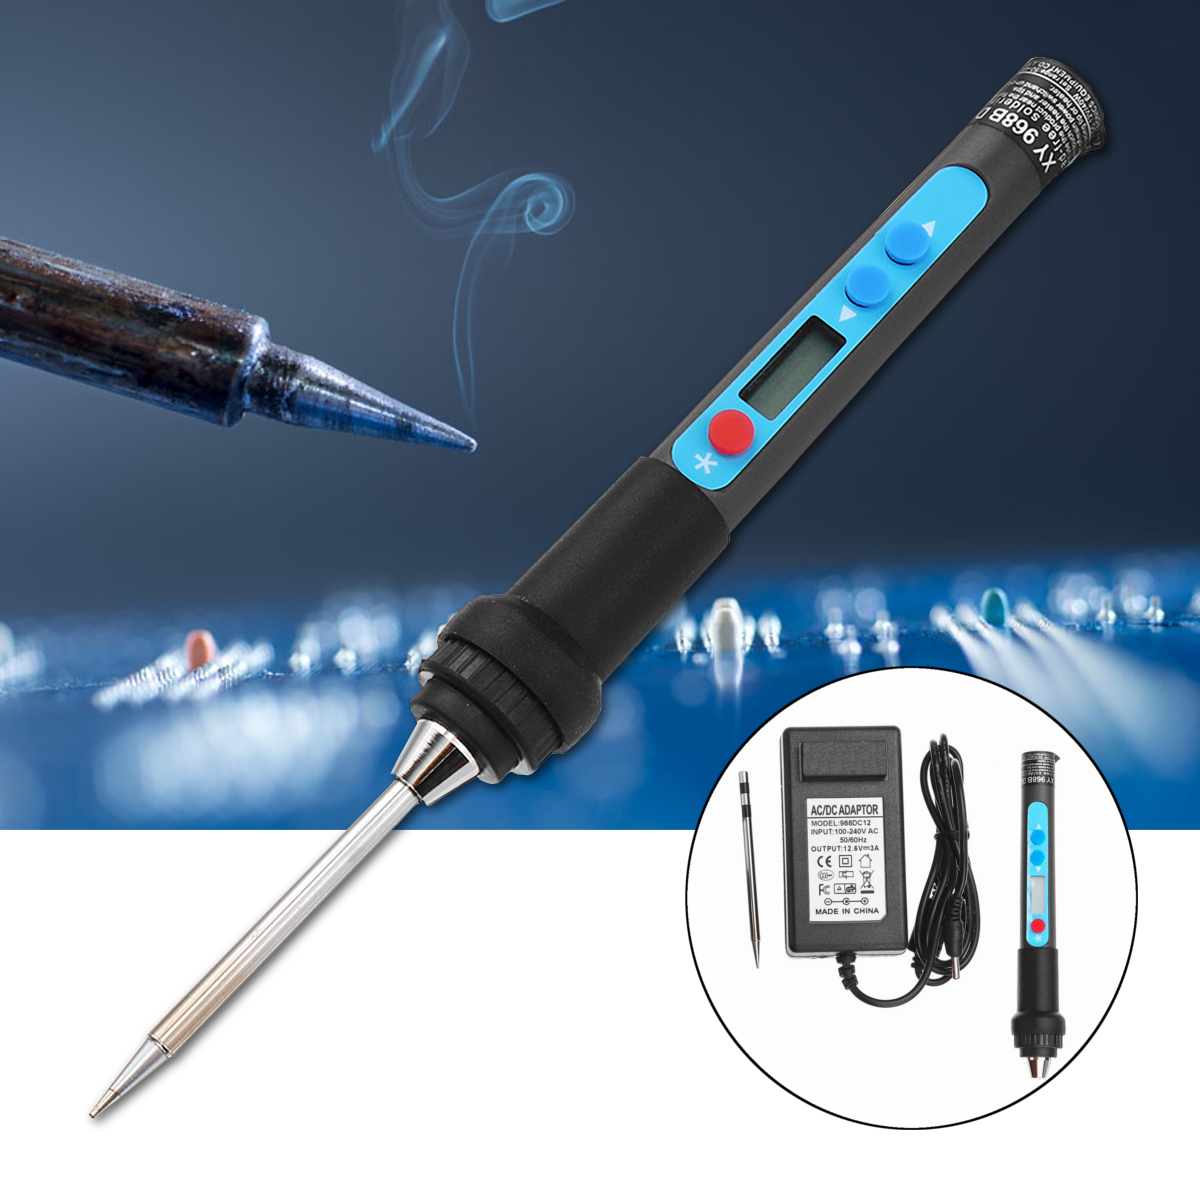 DC 12V 40W LCD Adjustable Temperature Electric Soldering Iron Set Welding Solder Station Heat Pencil Repair Tool Kit minki cheng юбка длиной 3 4